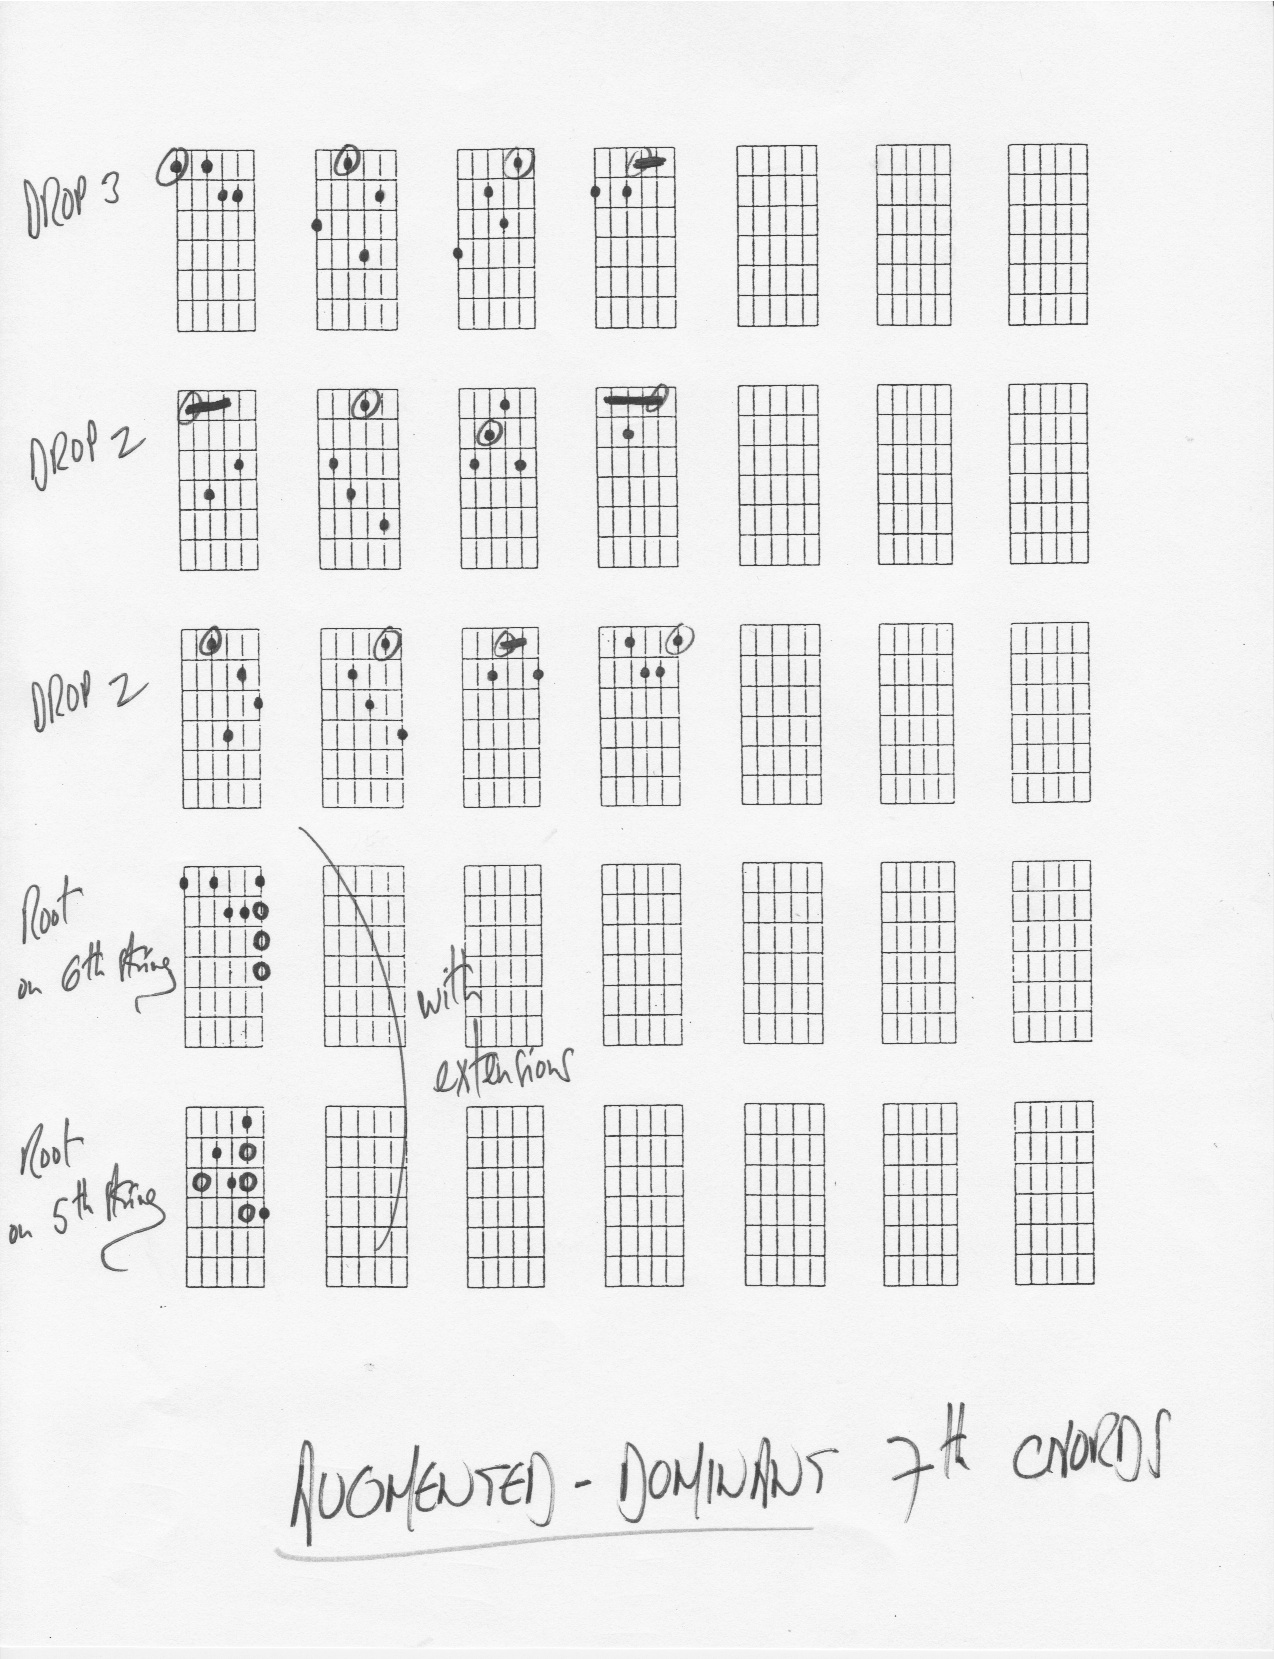 What Is An Augmented 7 Chord The Augmented Dominant Chord The 7